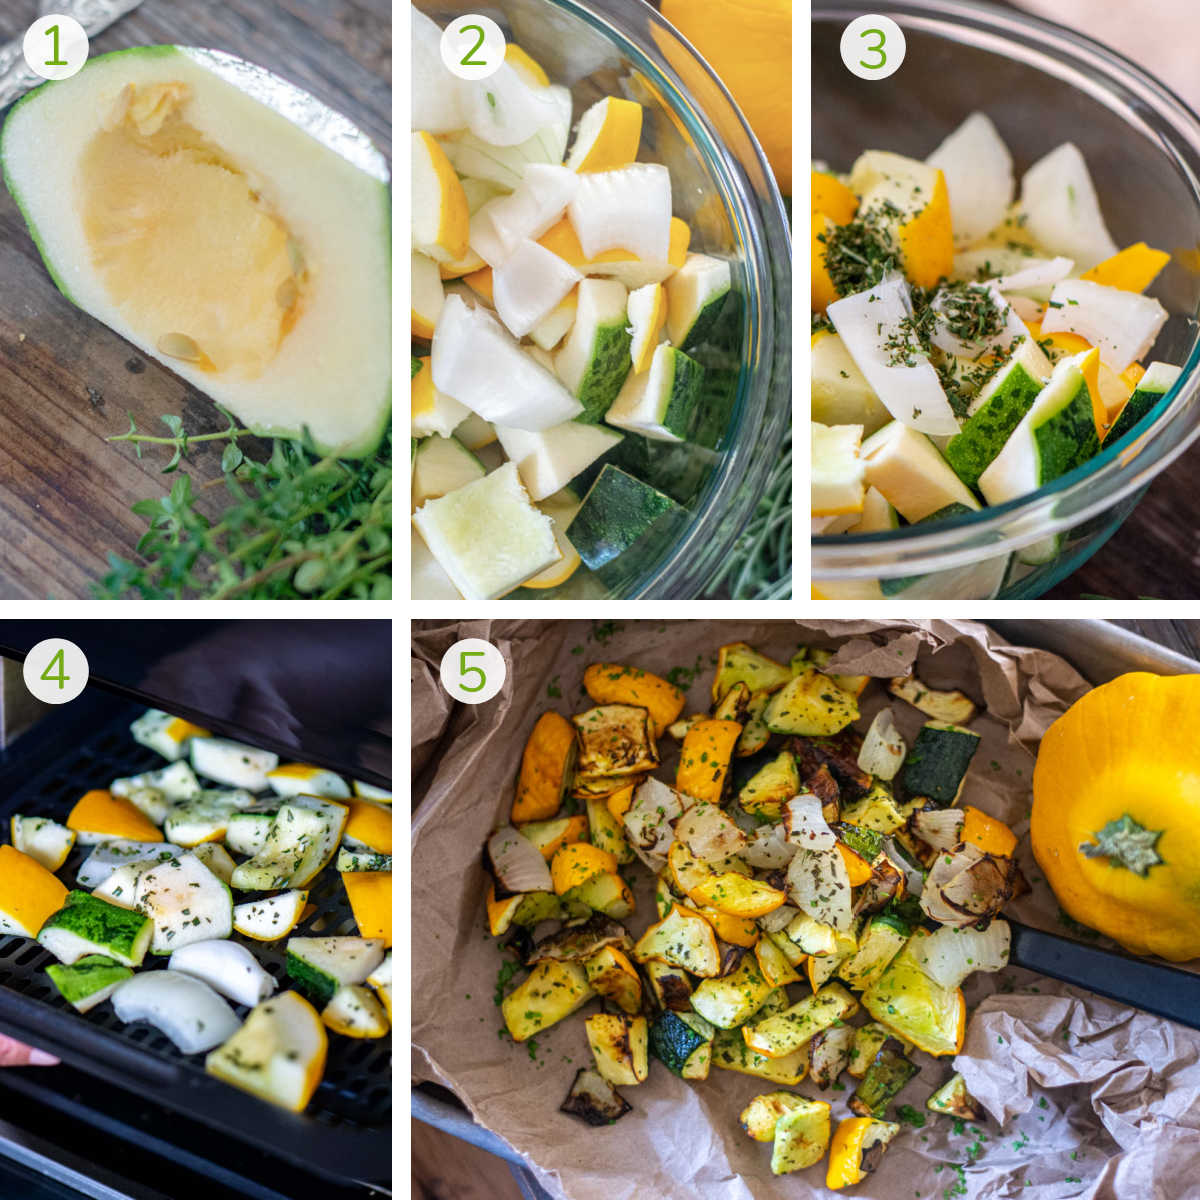 several process photos showing removing the seeds, seasoning, air frying and serving the patty pan squash.